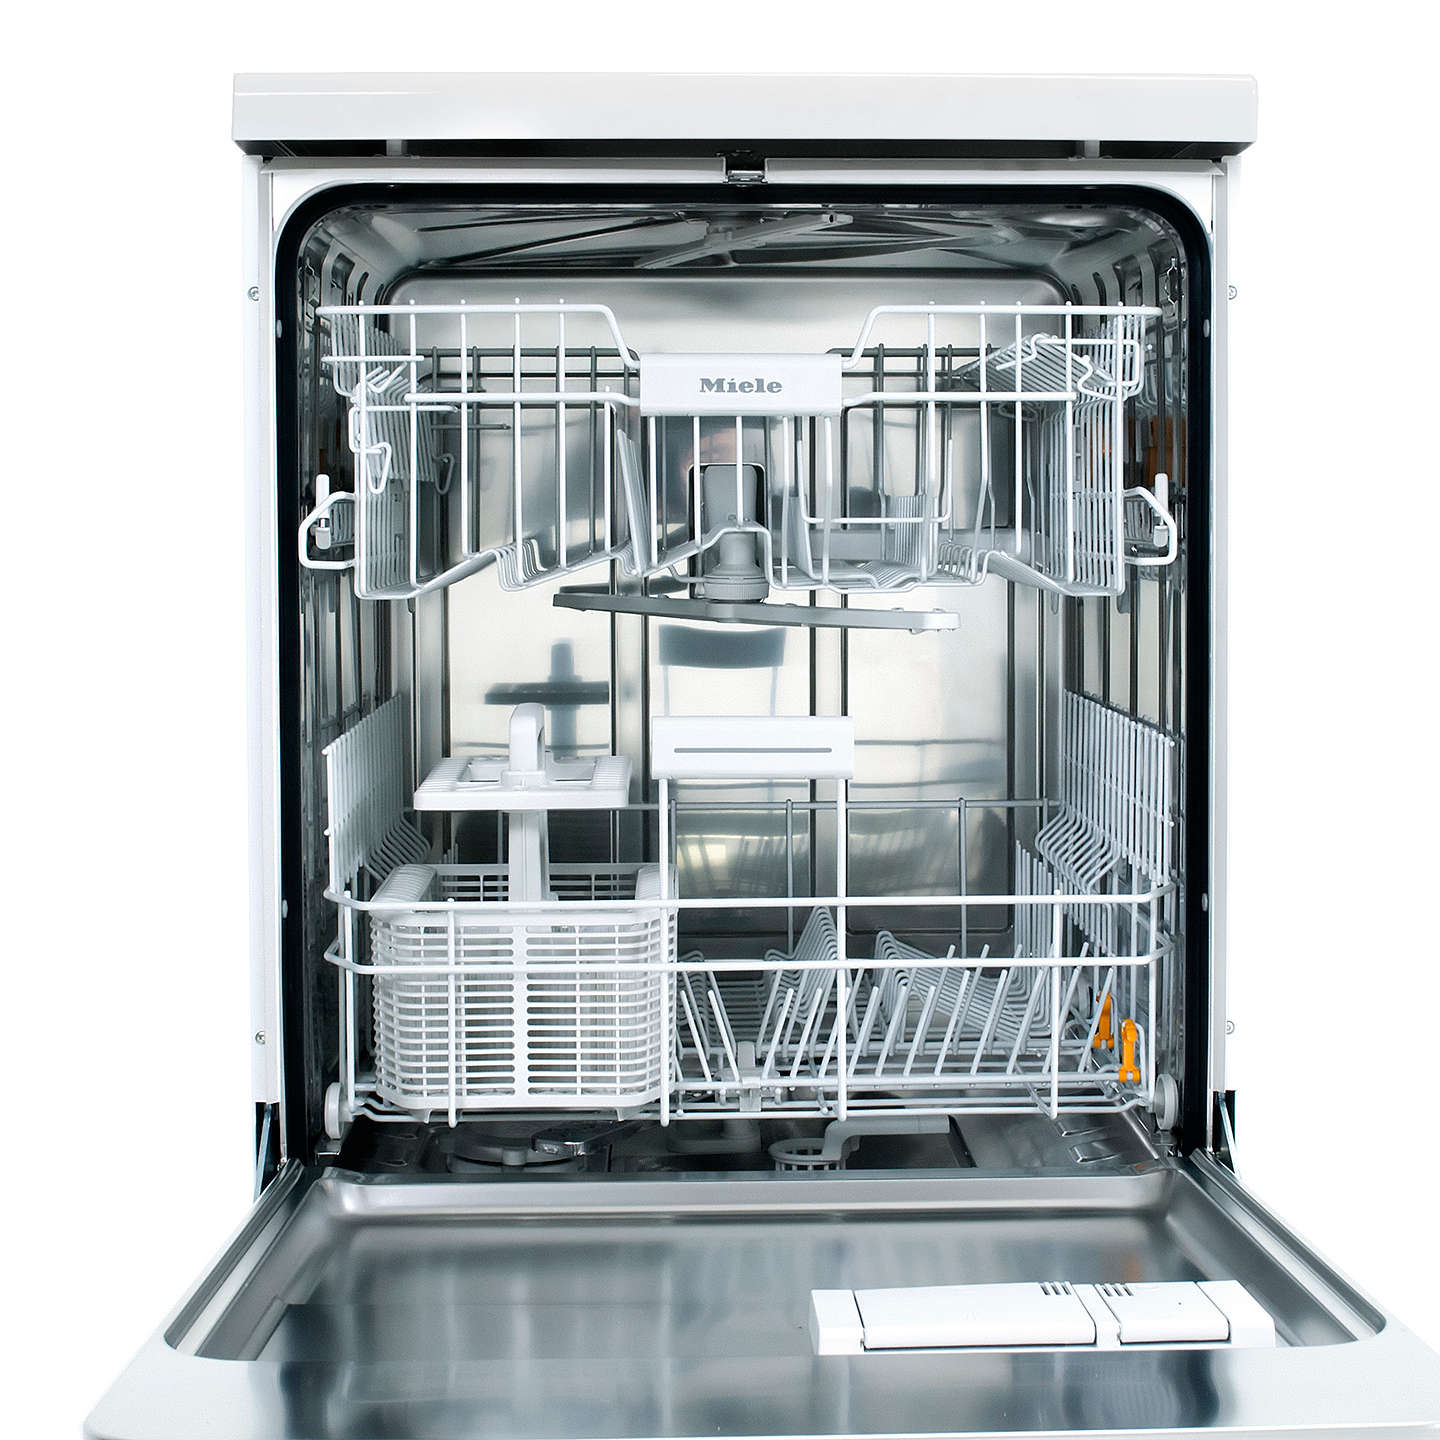 Miele G4940BKCLST Freestanding Dishwasher, Clean Steel at John Lewis